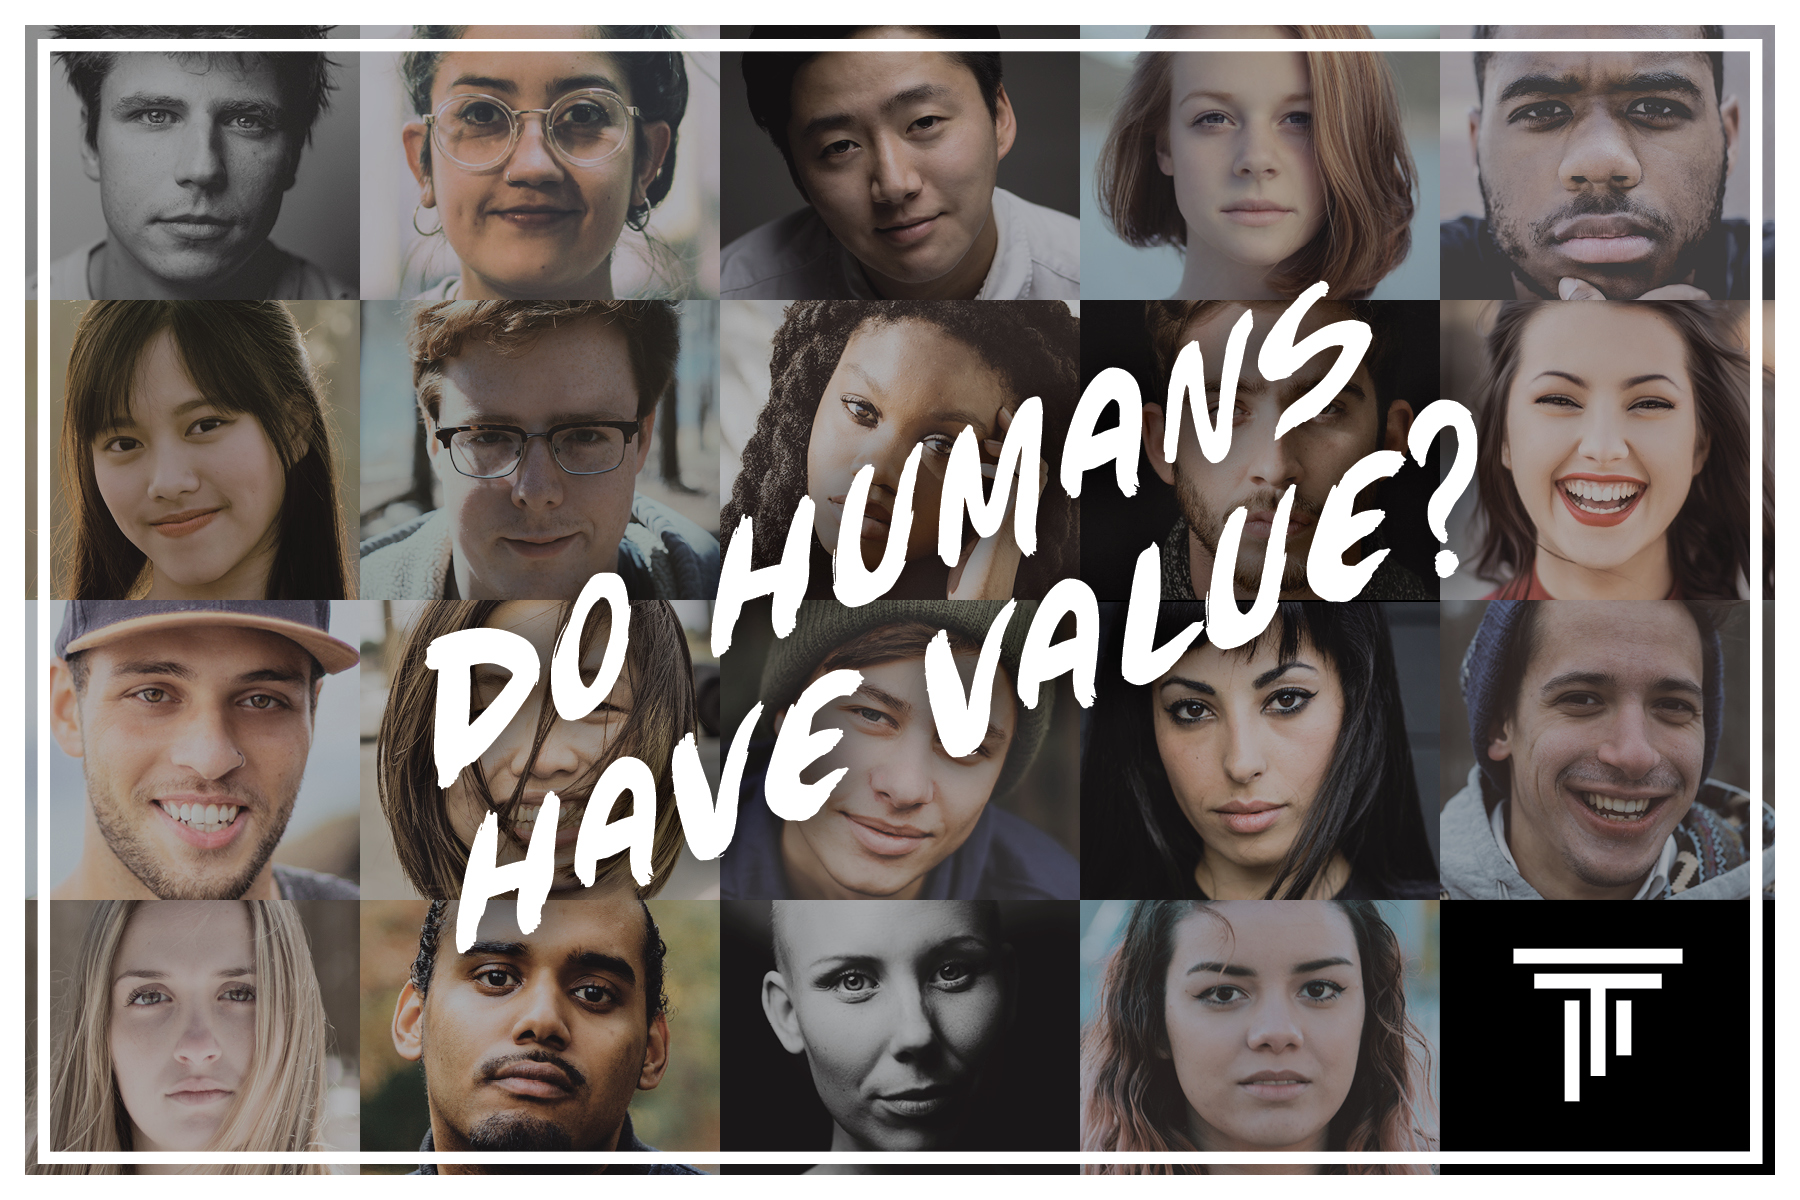 The-Thompson-Institute-Do-Humans-Have Value-Event-Ohio-State-University.jpg